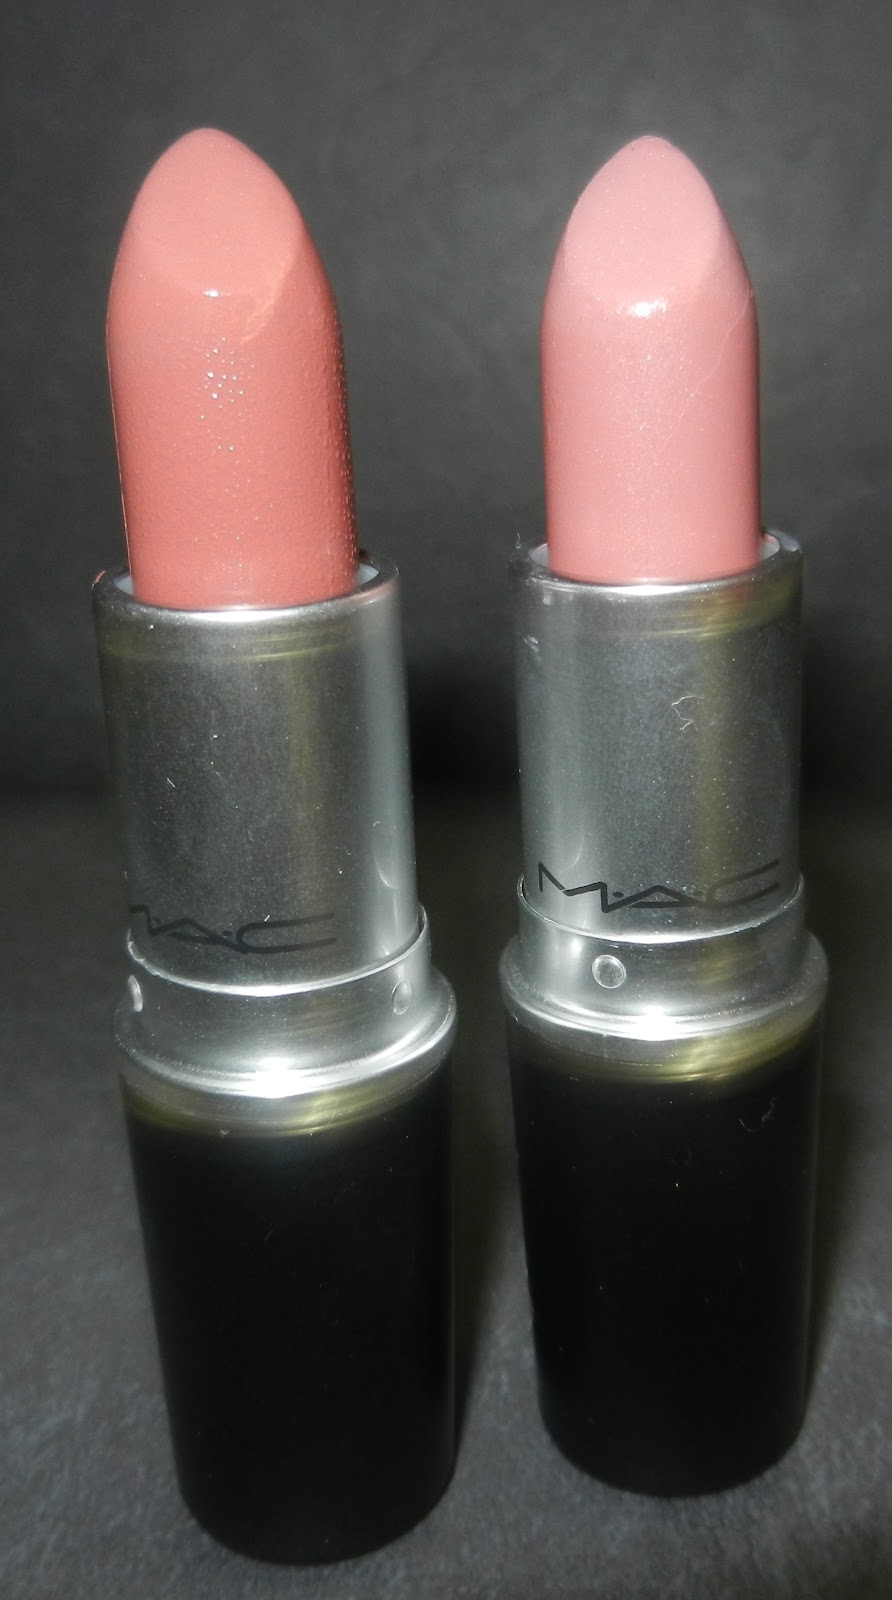 Mac Angel Dupe Wet N Wild 901b Lipstick Dupe: Life Is Beautiful By Jannah Lopez♥ !: MAC Frost Lipstick